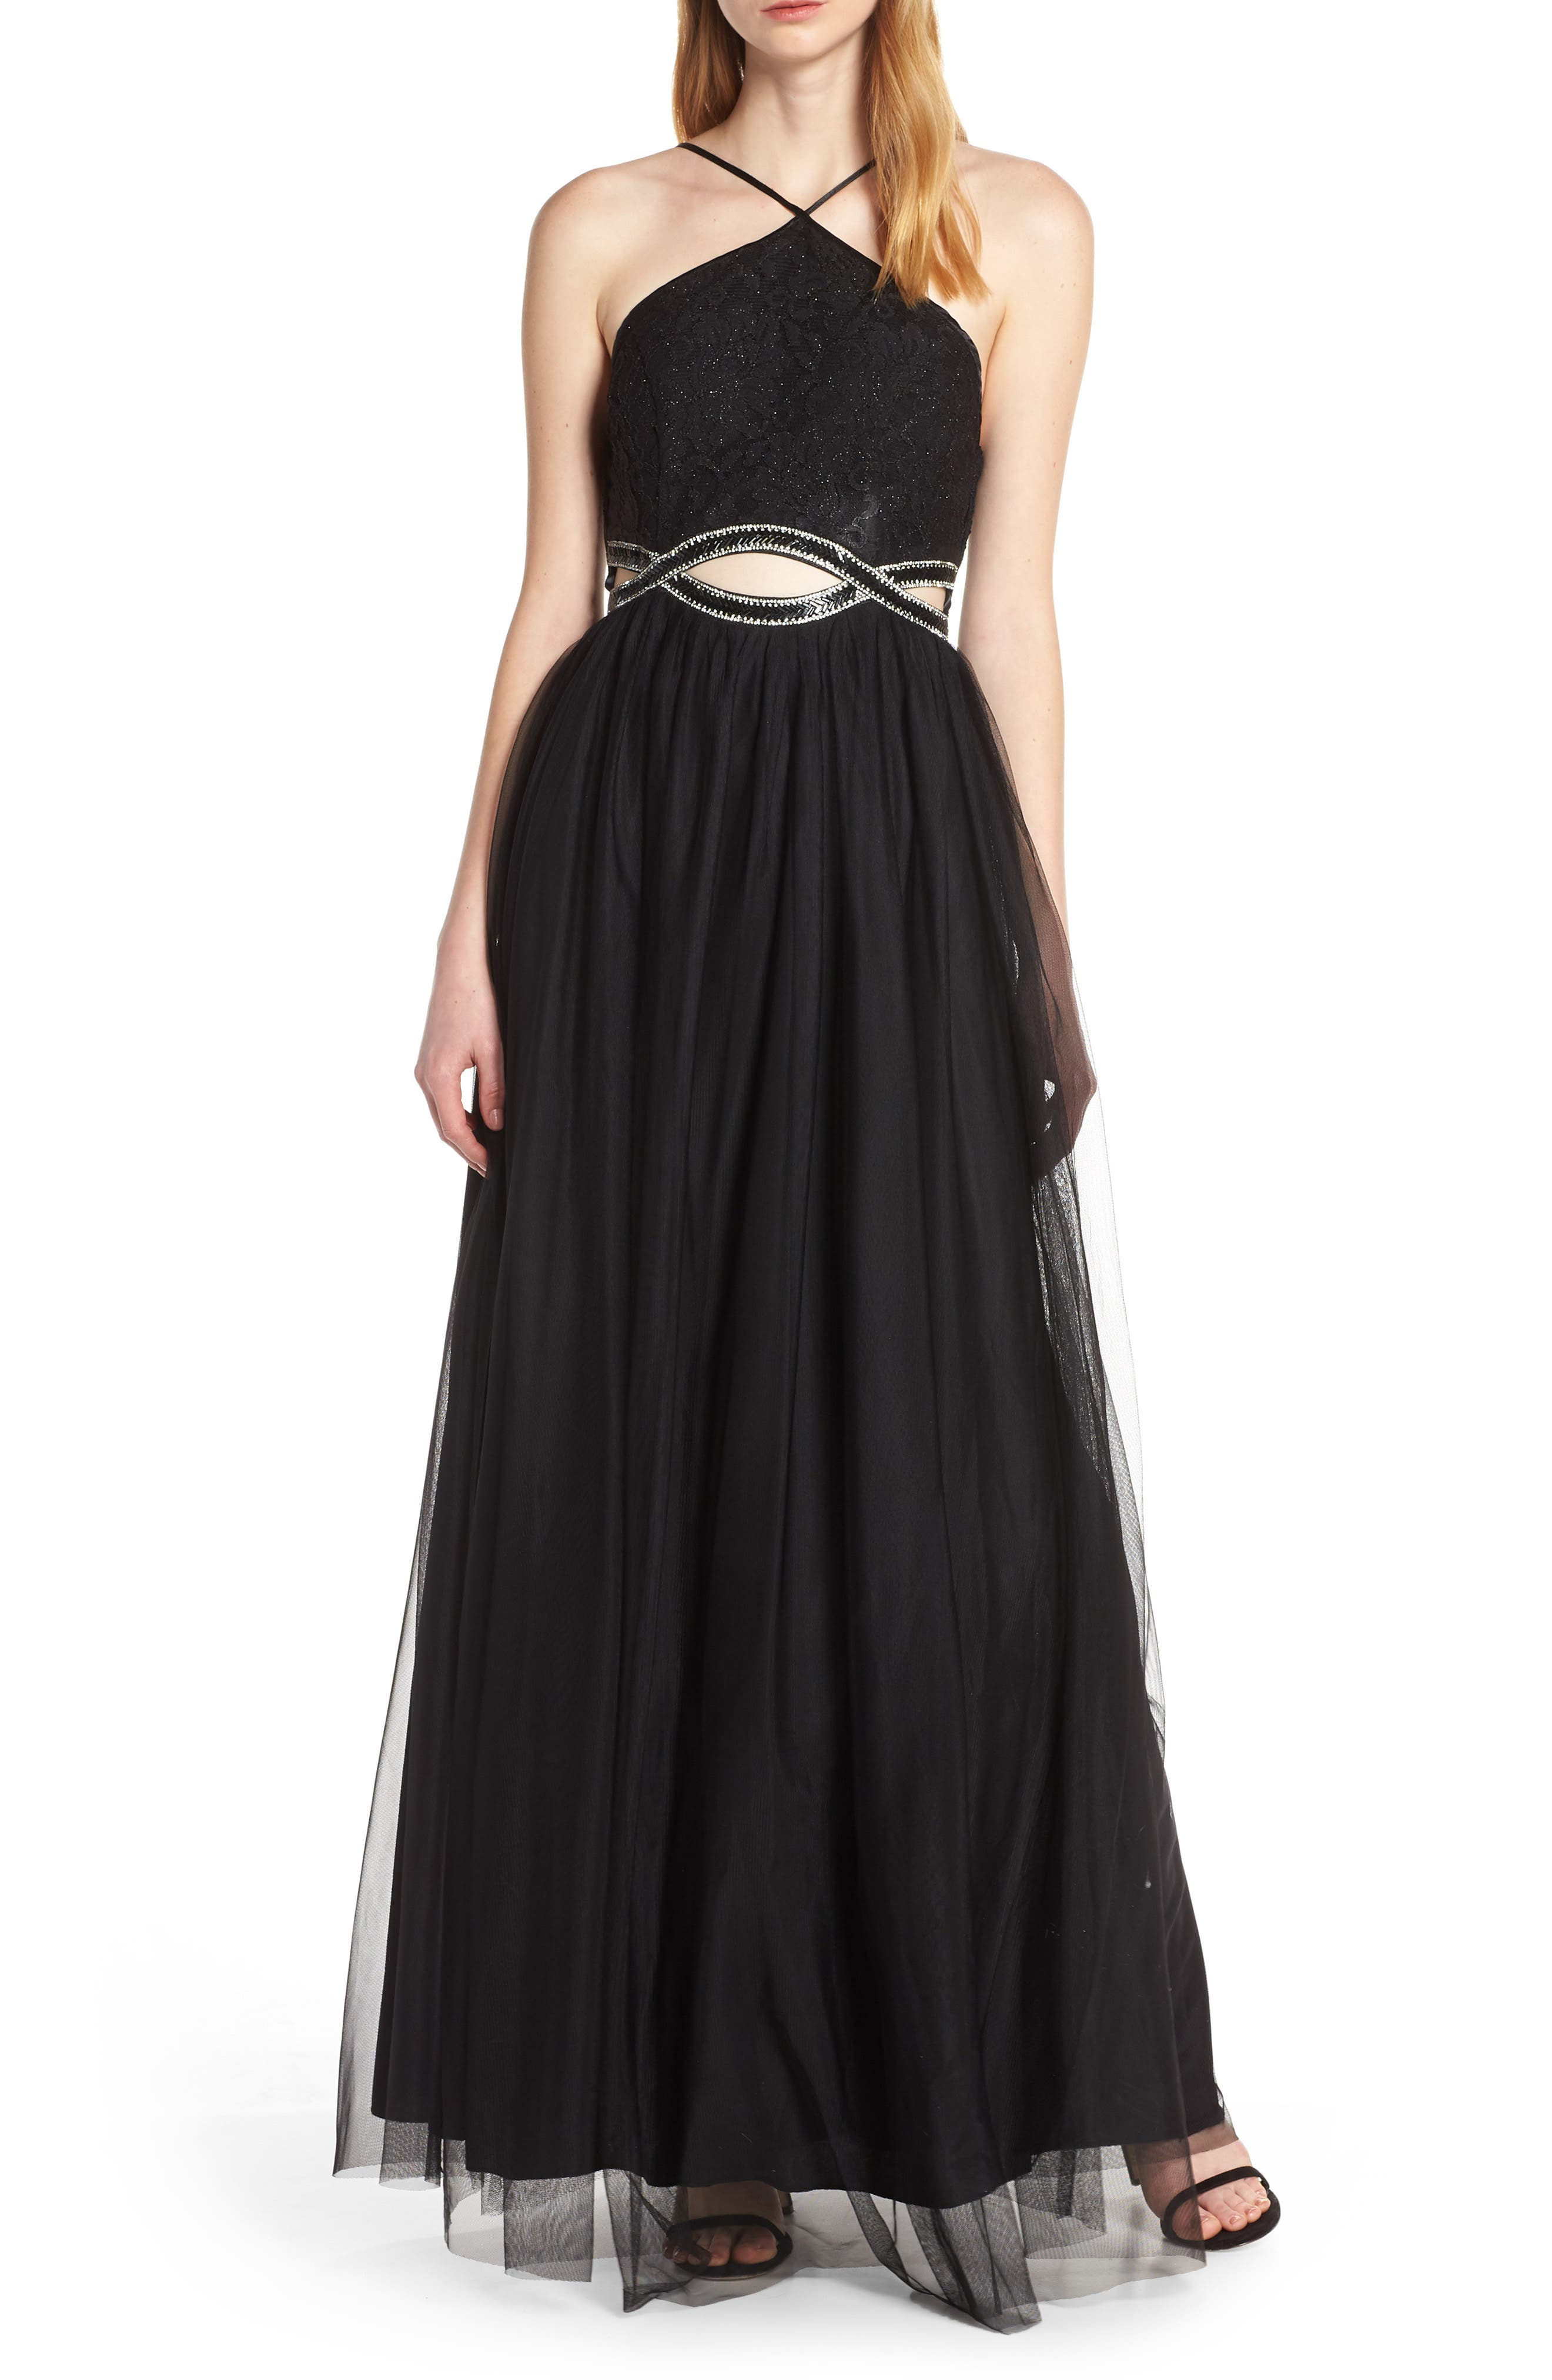 Sequin Hearts Lace & Tulle Evening Dress, Black